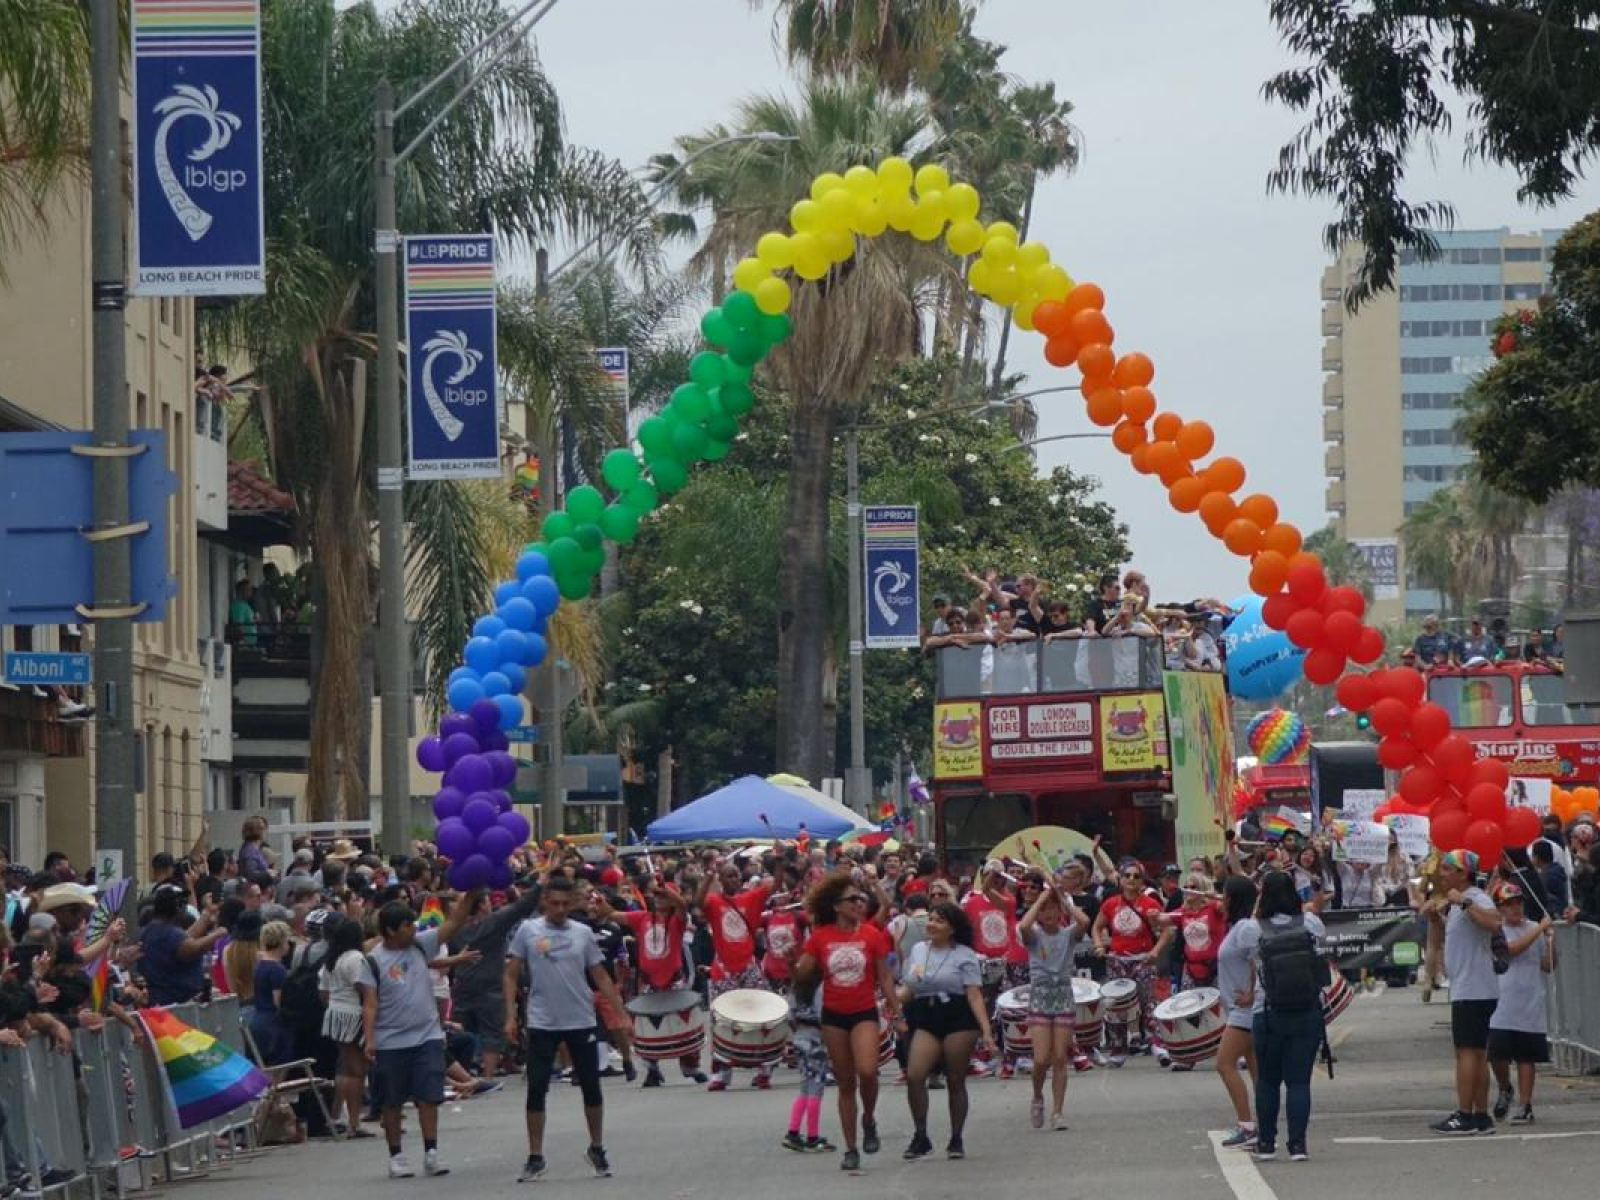 Main image for event titled Long Beach Pride Festival